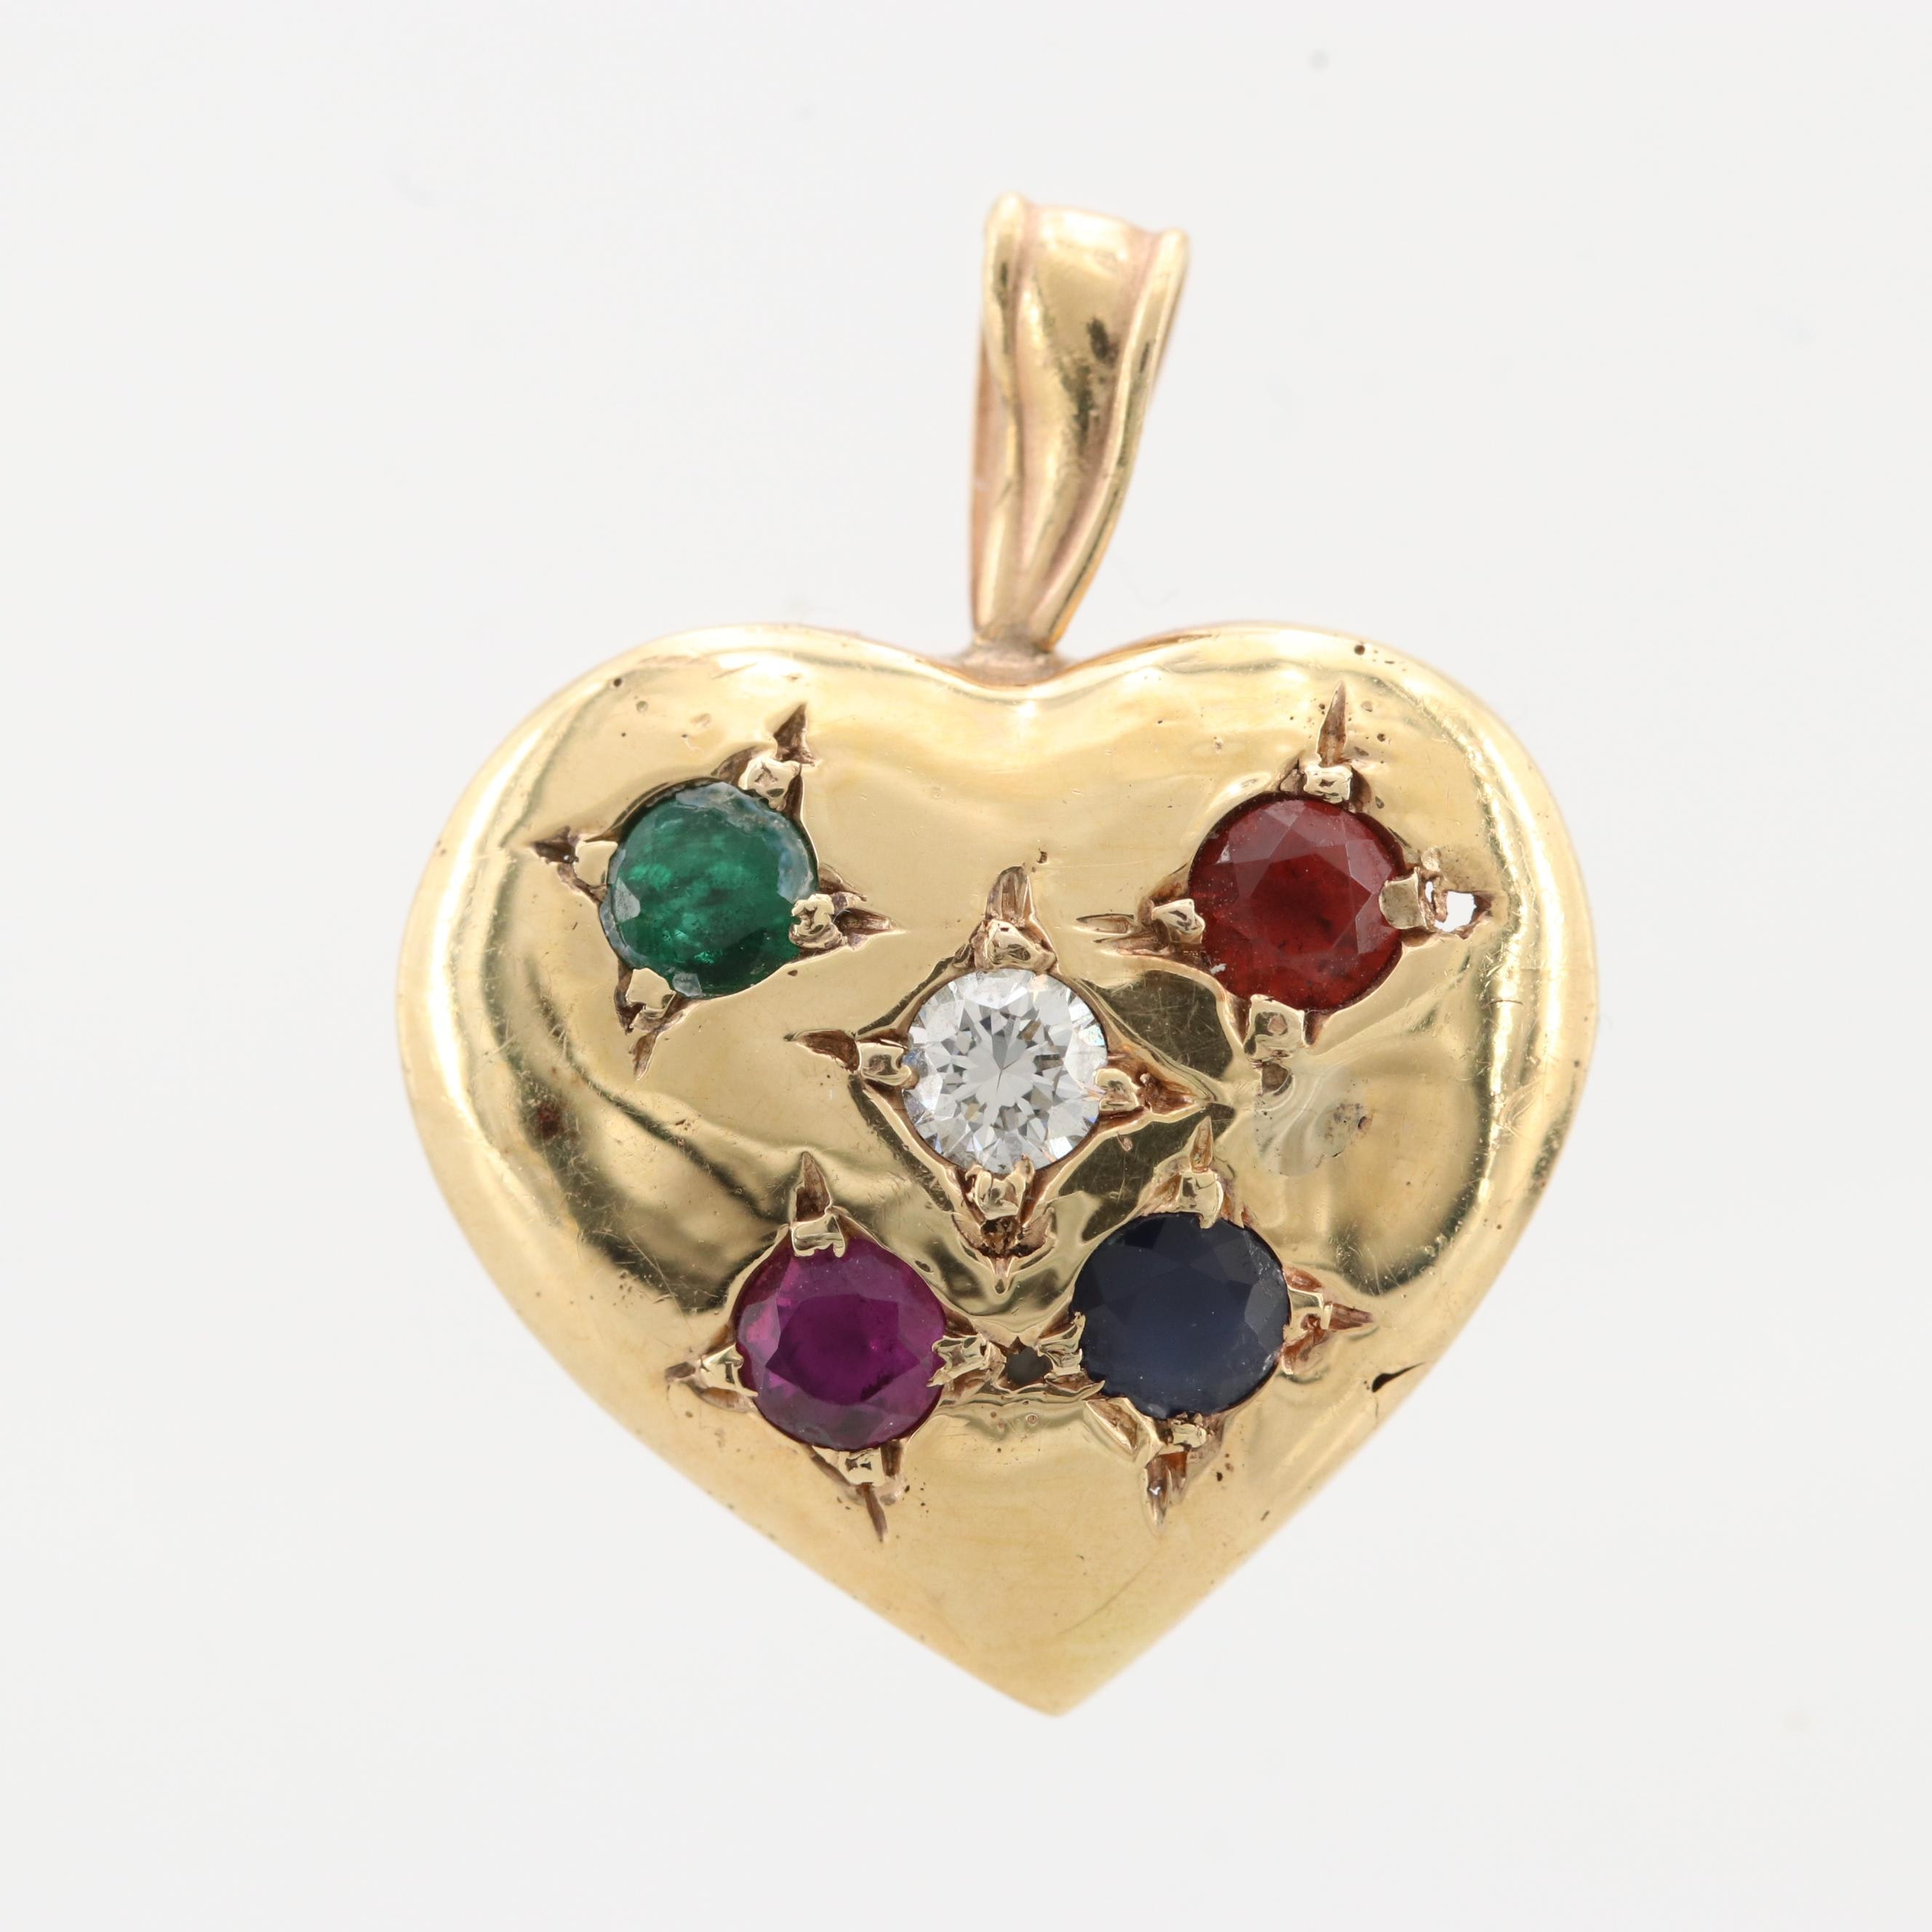 14K Yellow Gold Diamond and Gemstone Heart Pendant